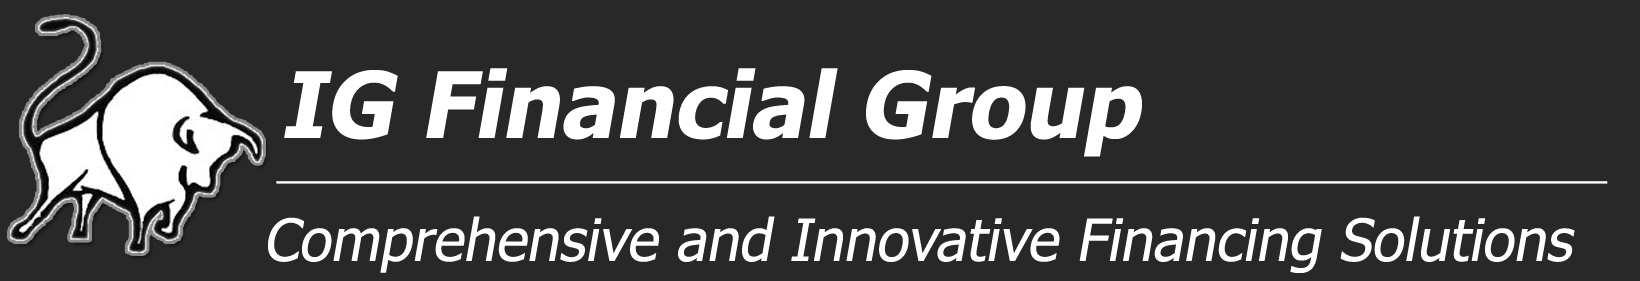 IG Financial Group